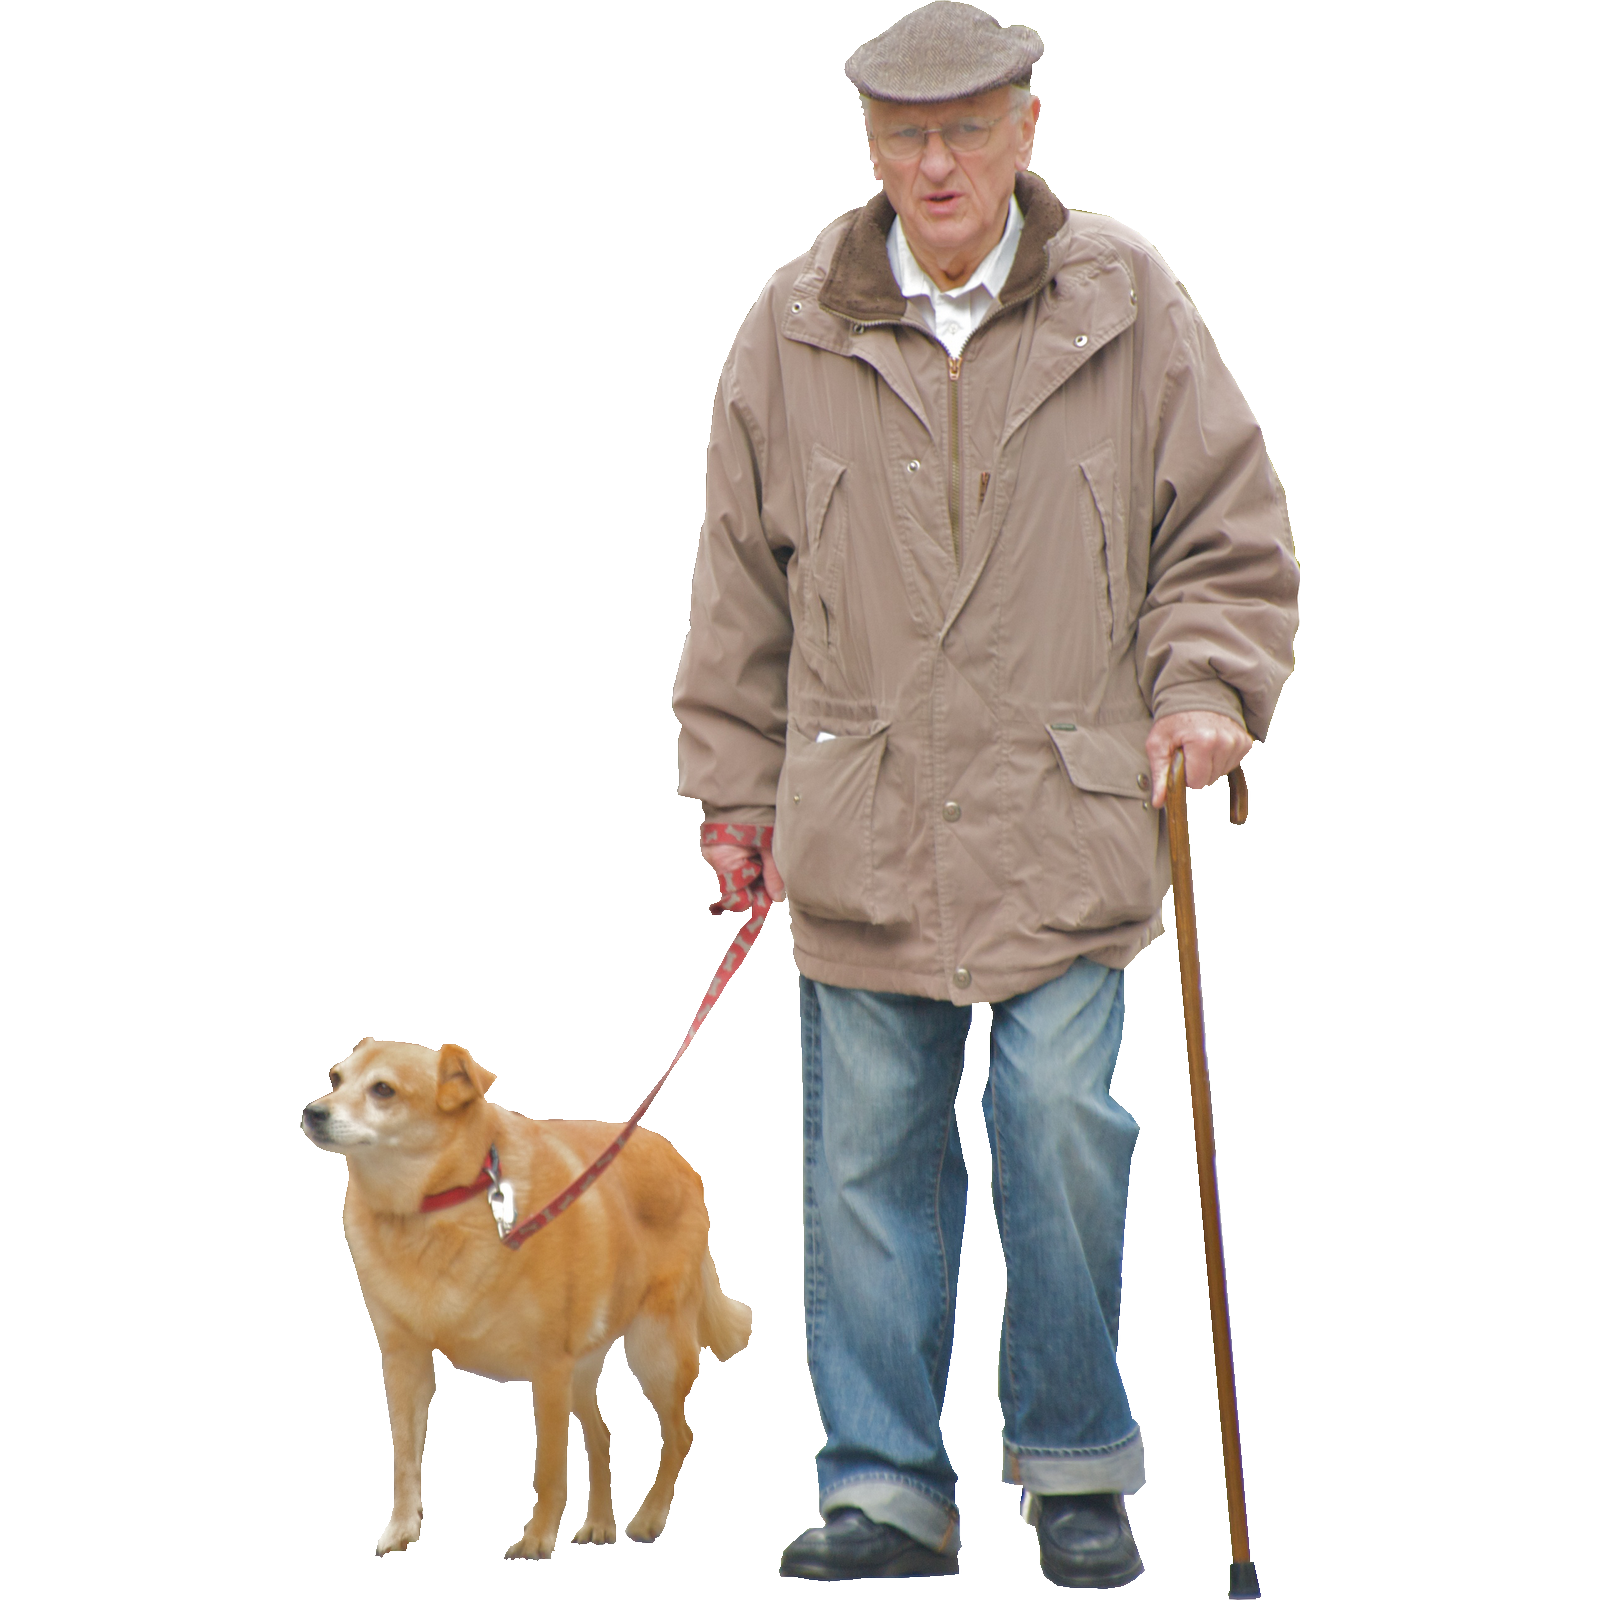 Im A Grumpy Old Man But My Dog Still Loves Me By Ed Yourdon Png 1600 1600 Render People Old Man Walking People Cutout